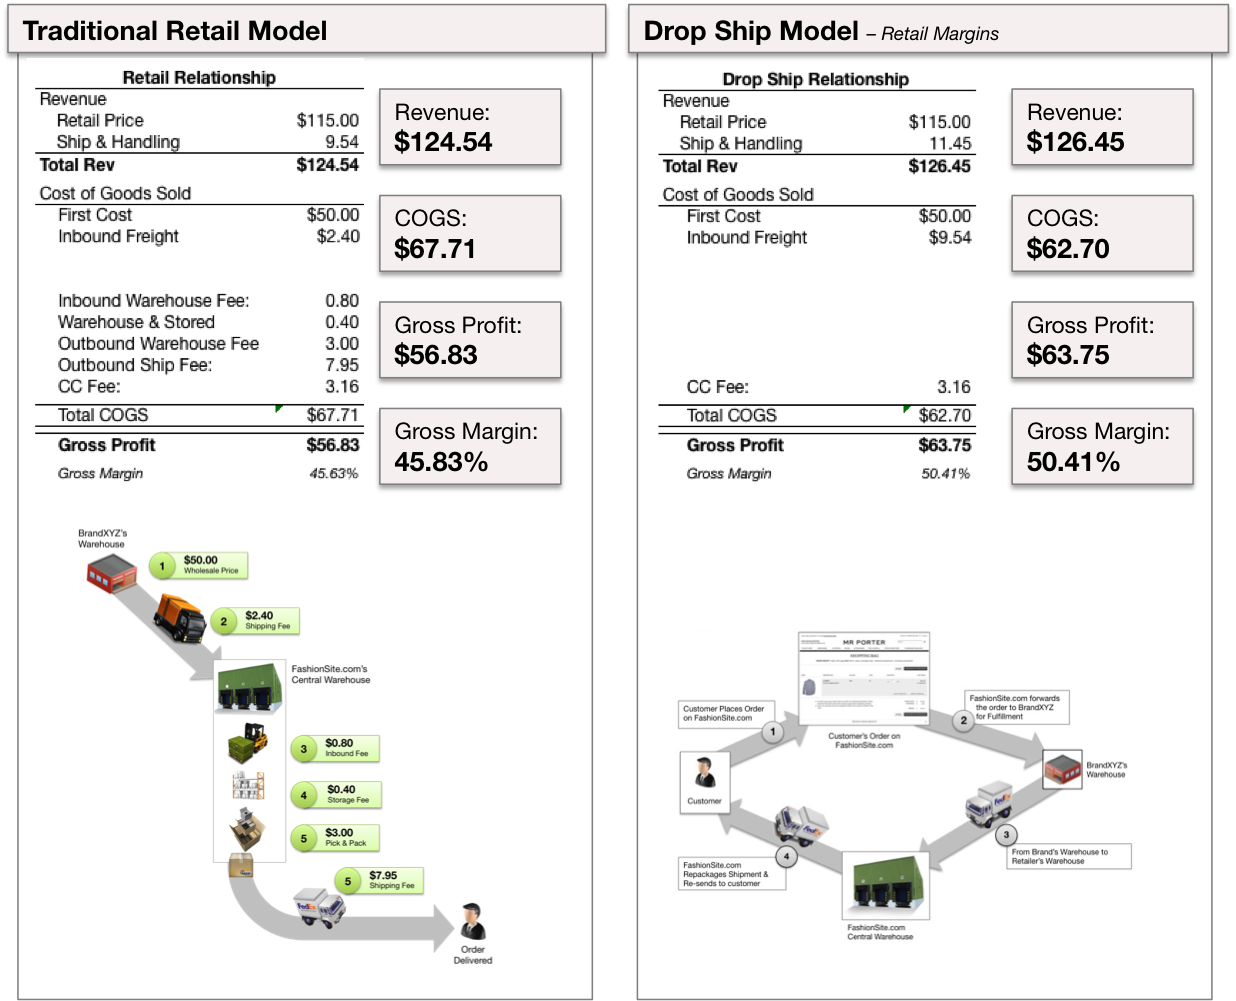 dropship vs retail transpo costs.png